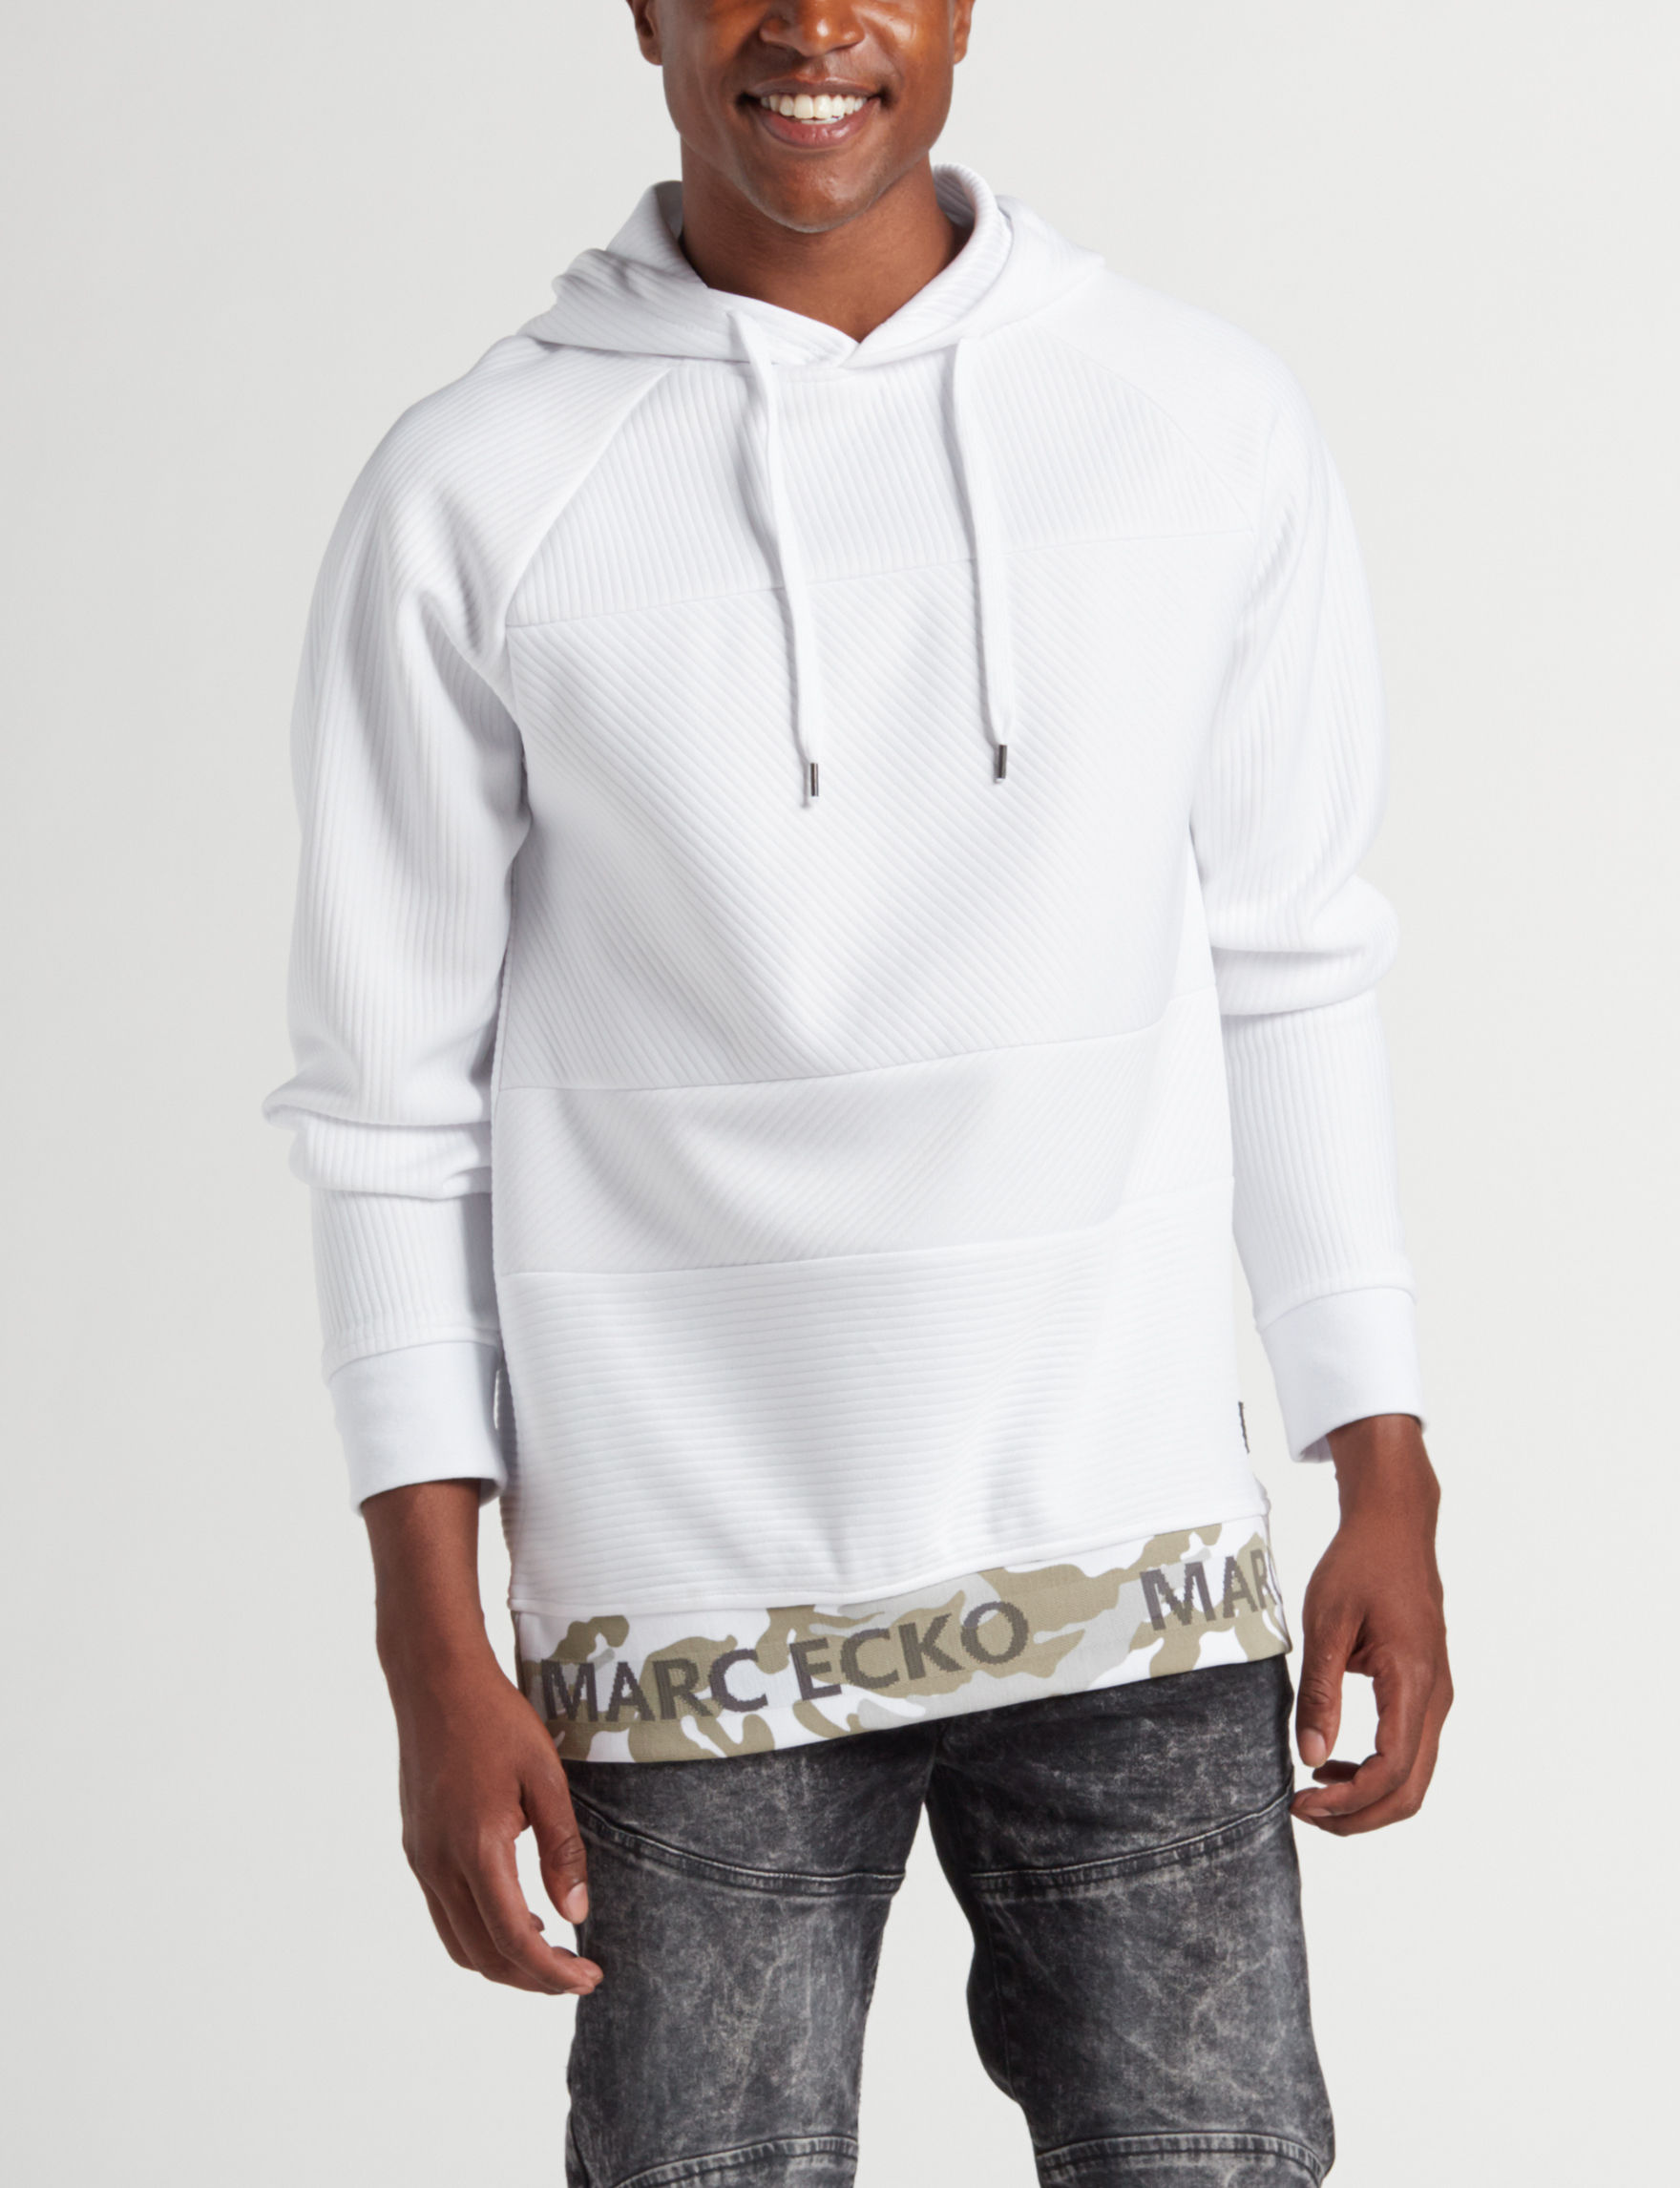 Marc Ecko White Pull-overs